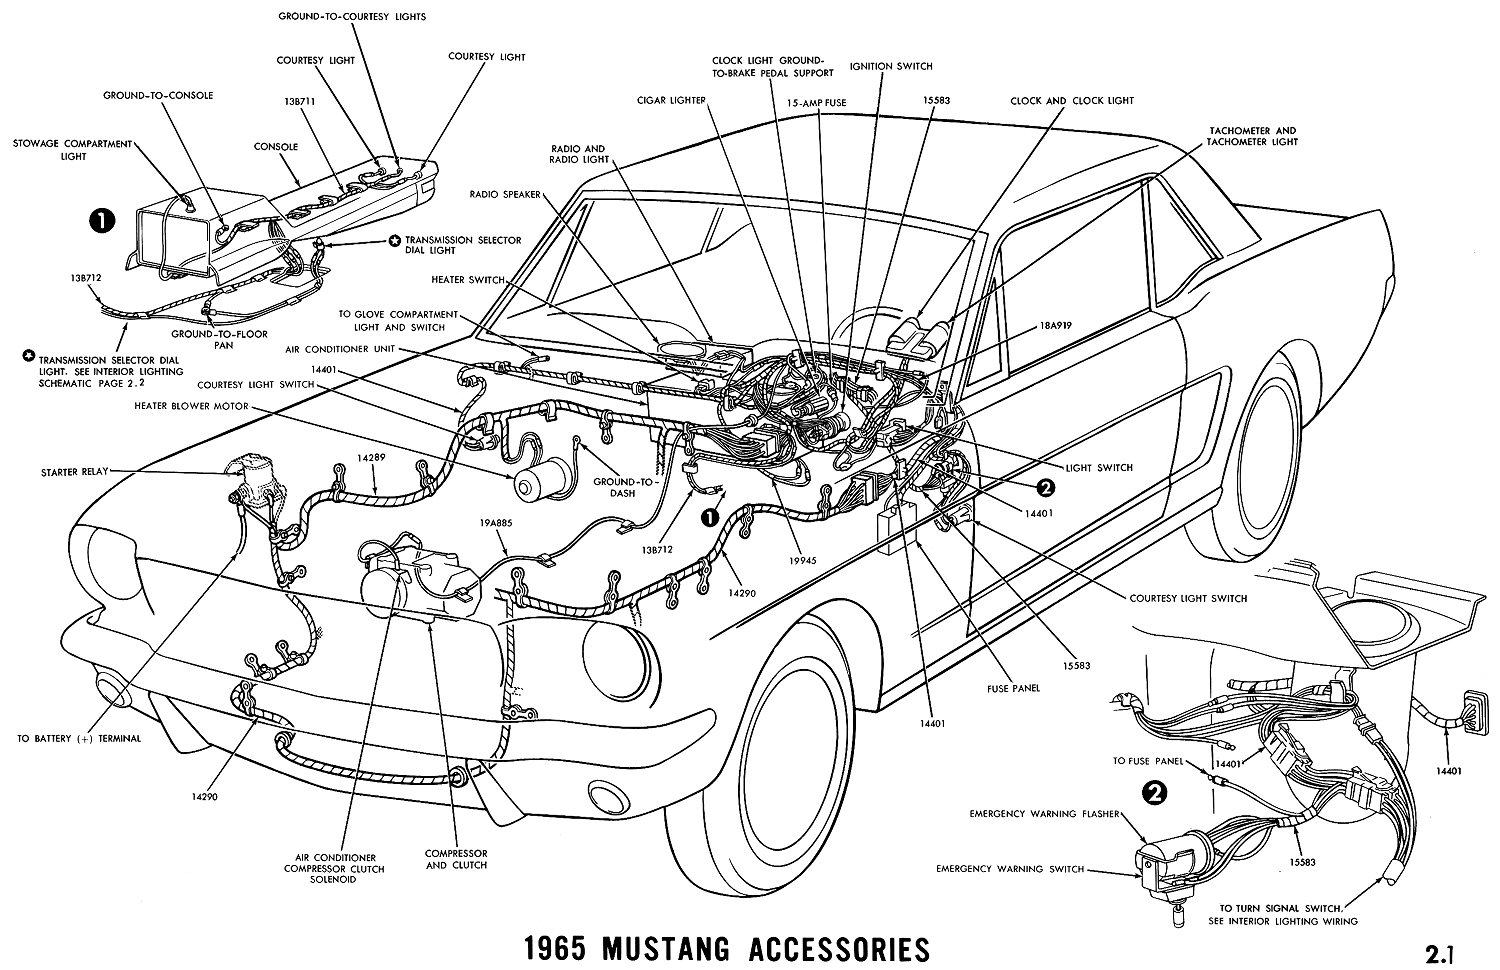 1965h 1965 mustang wiring diagrams average joe restoration 1965 mustang engine wiring harness at virtualis.co